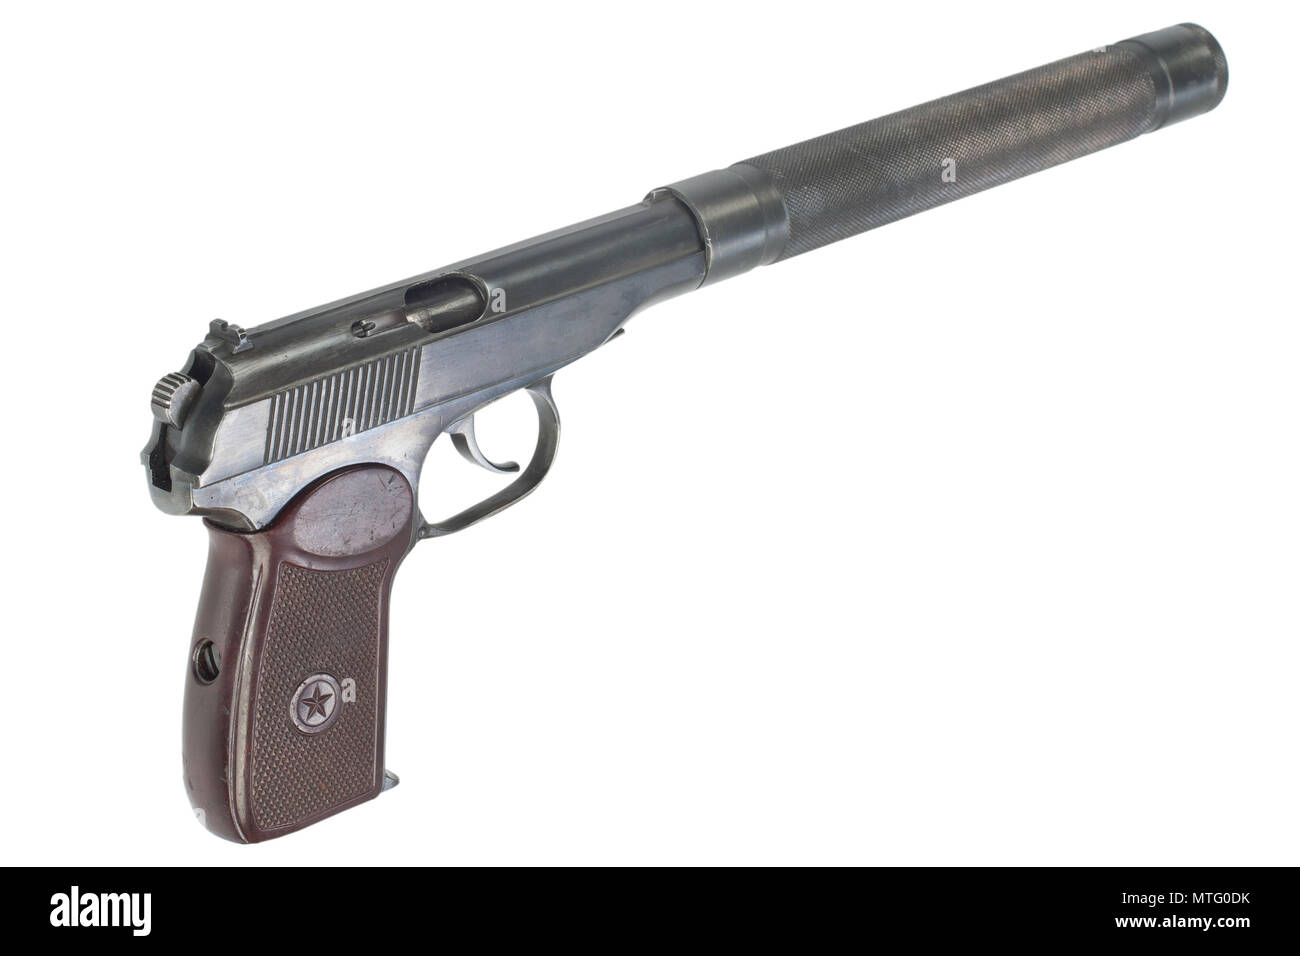 ussr makarov pistol with silencer isolated stock photo 187207039